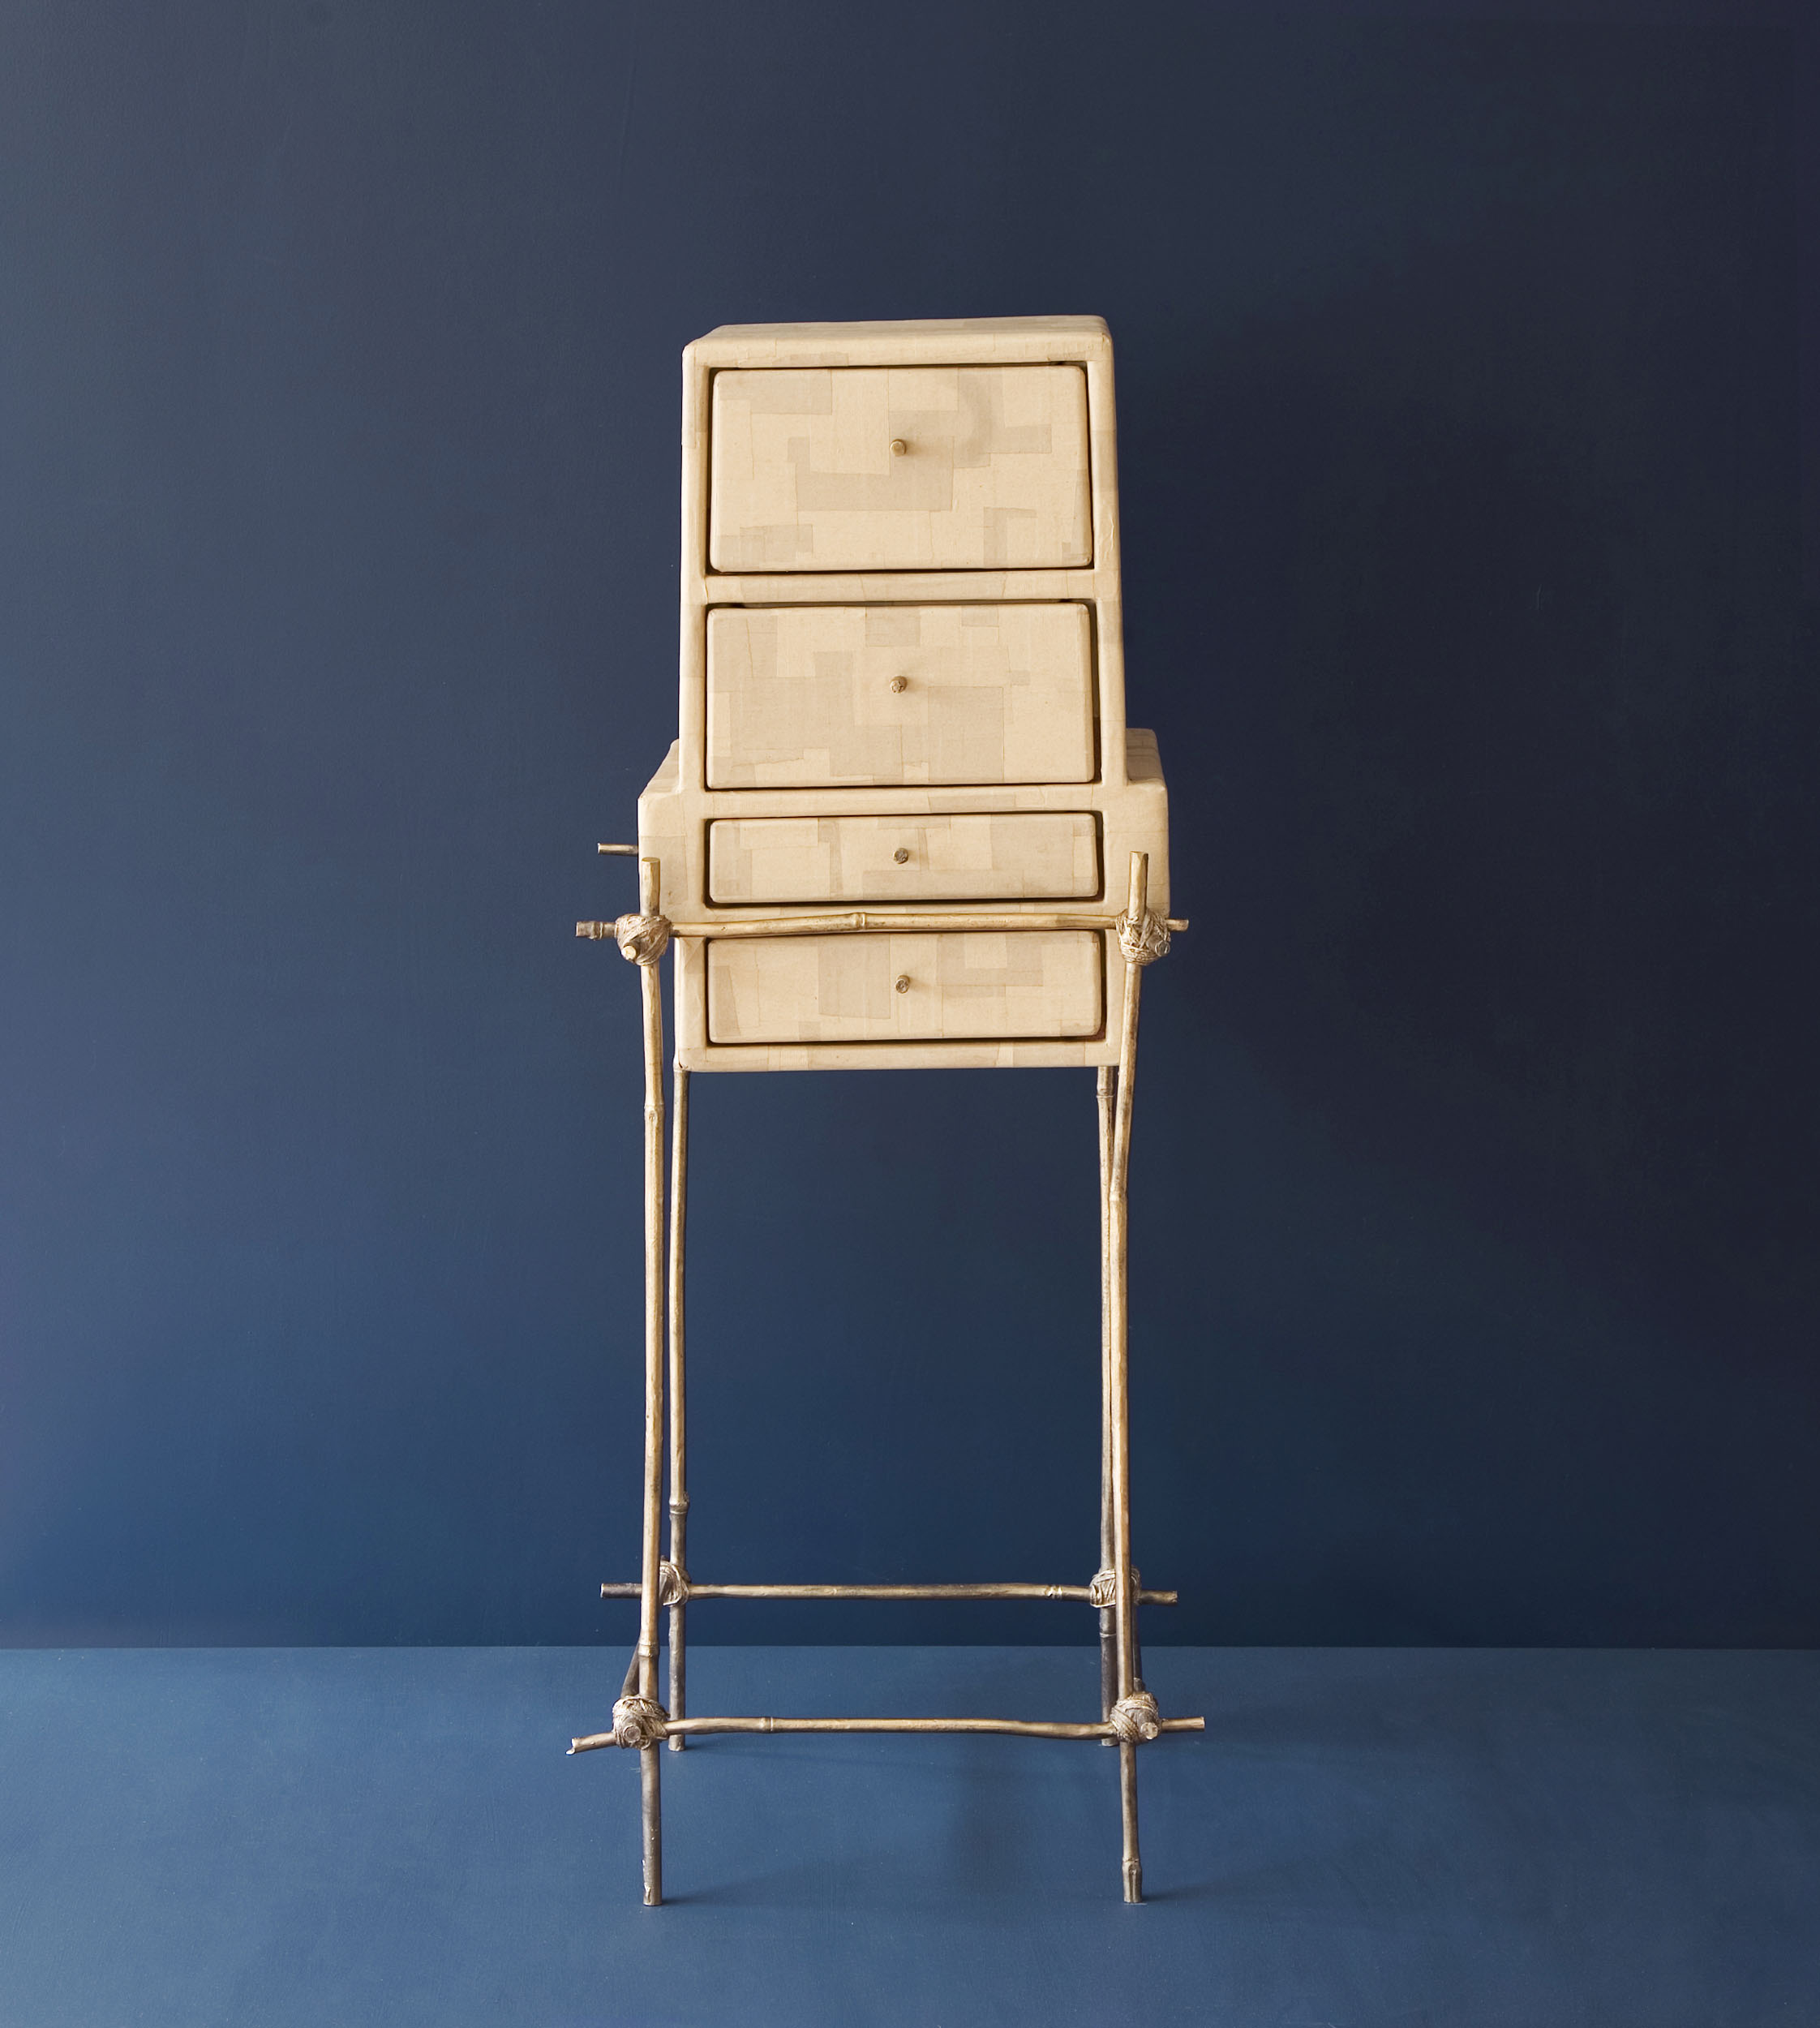 Petit Dejeuner furniture piece with bronze cast bamboo frame and gum paper drawers